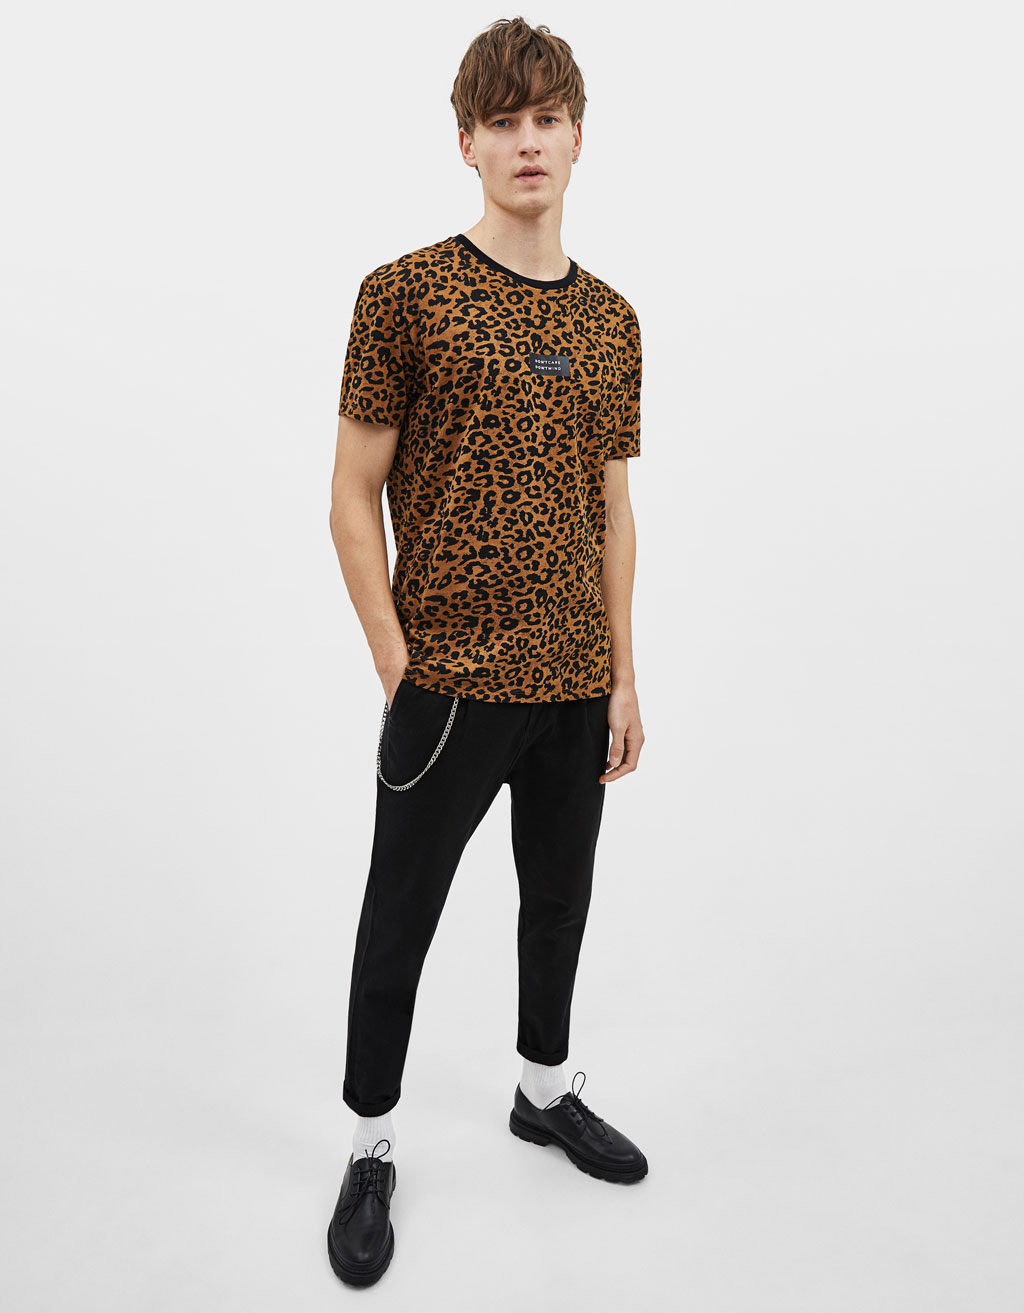 T-shirt com estampado leopardo